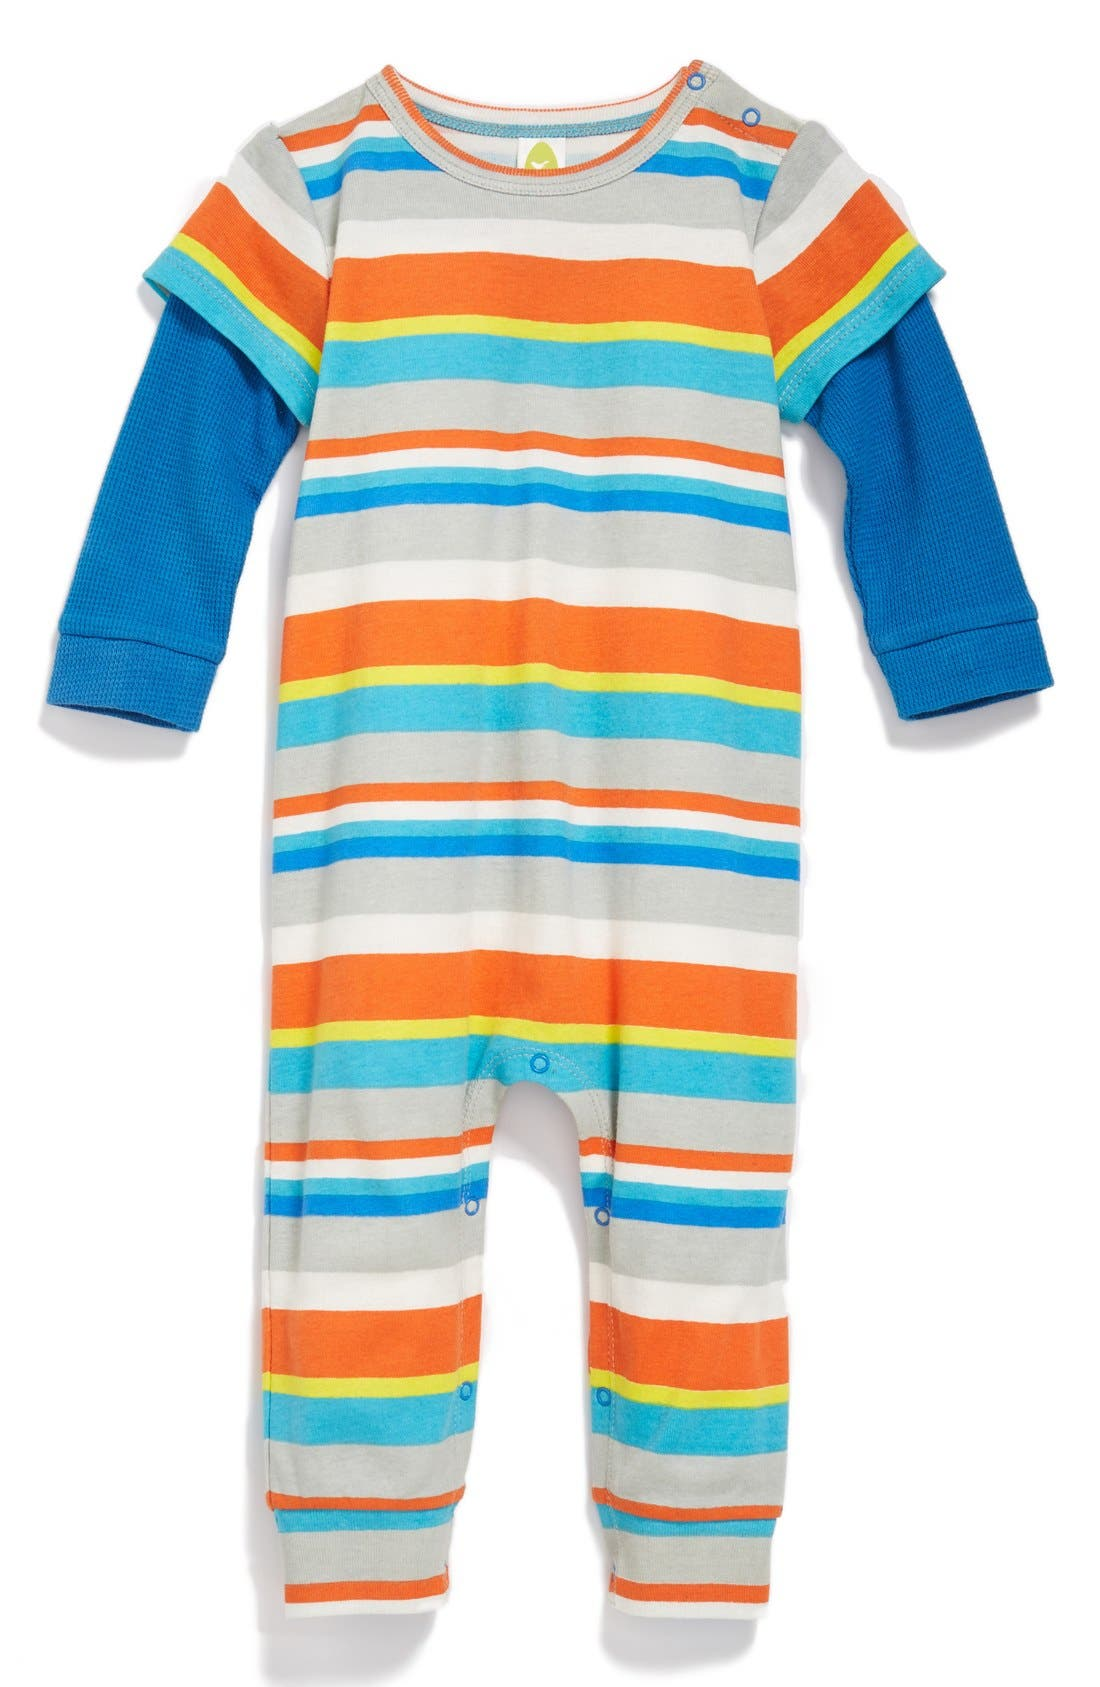 Alternate Image 1 Selected - Stem Baby Organic Cotton Romper (Baby Boys) (Nordstrom Exclusive)